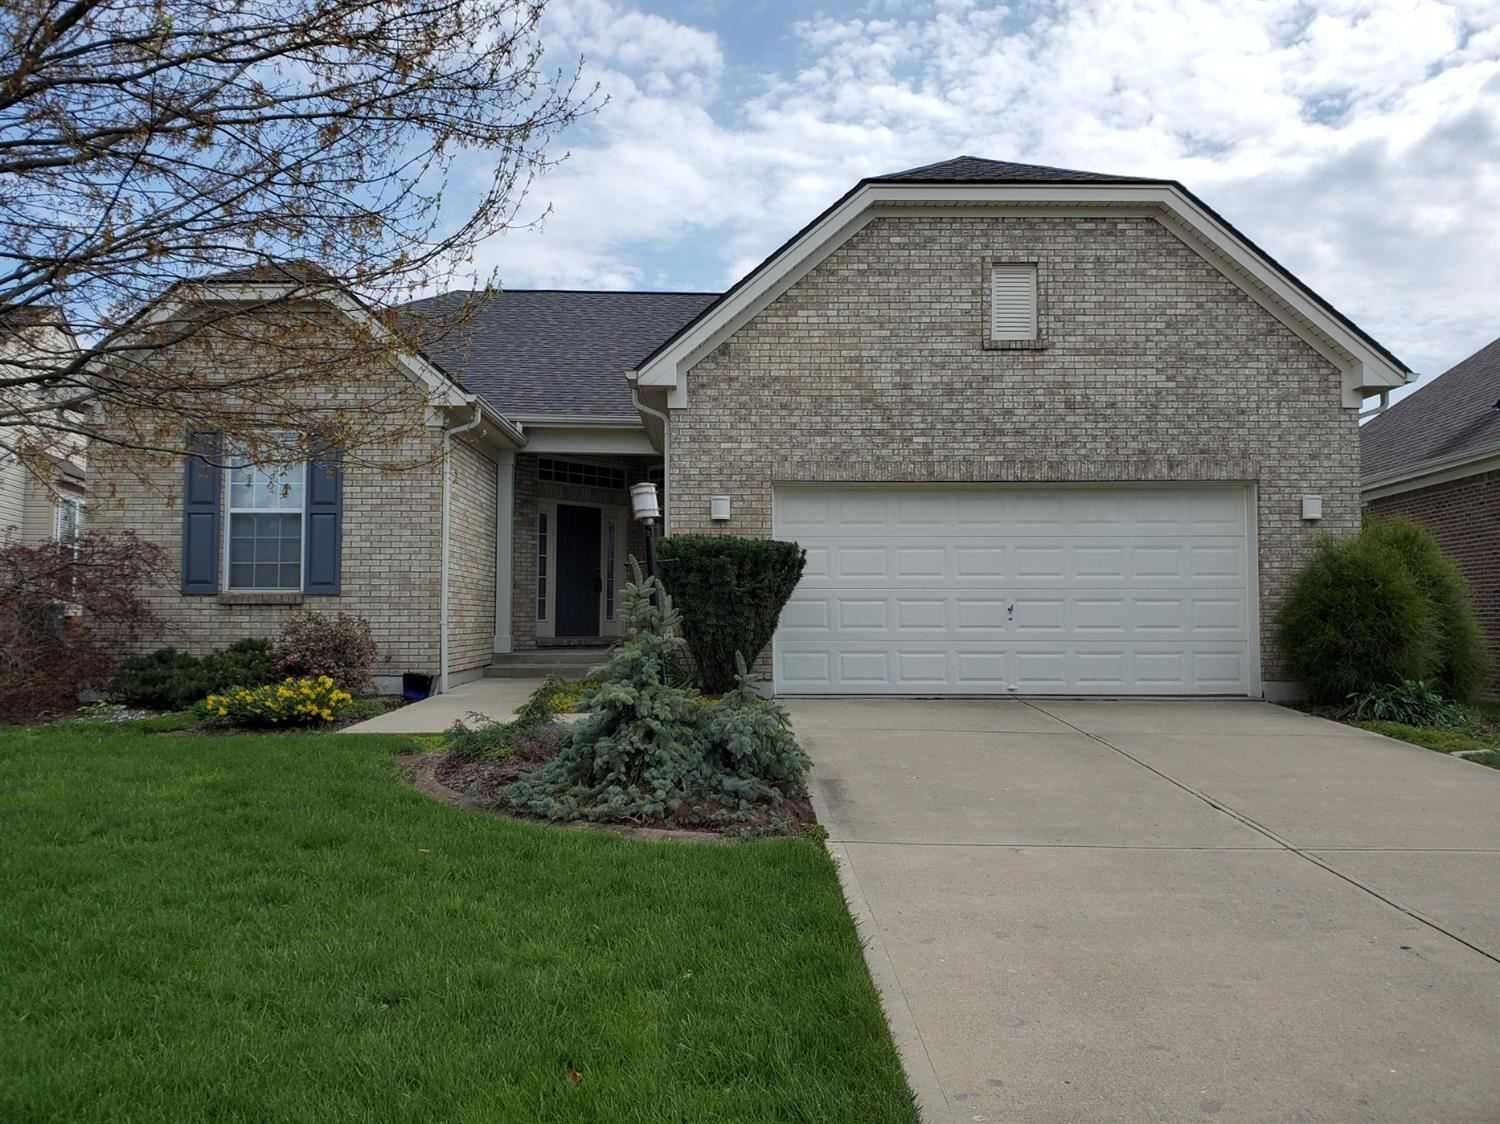 8319 Jeannes Creek Lane, West Chester, OH 45069 - #: 1658593